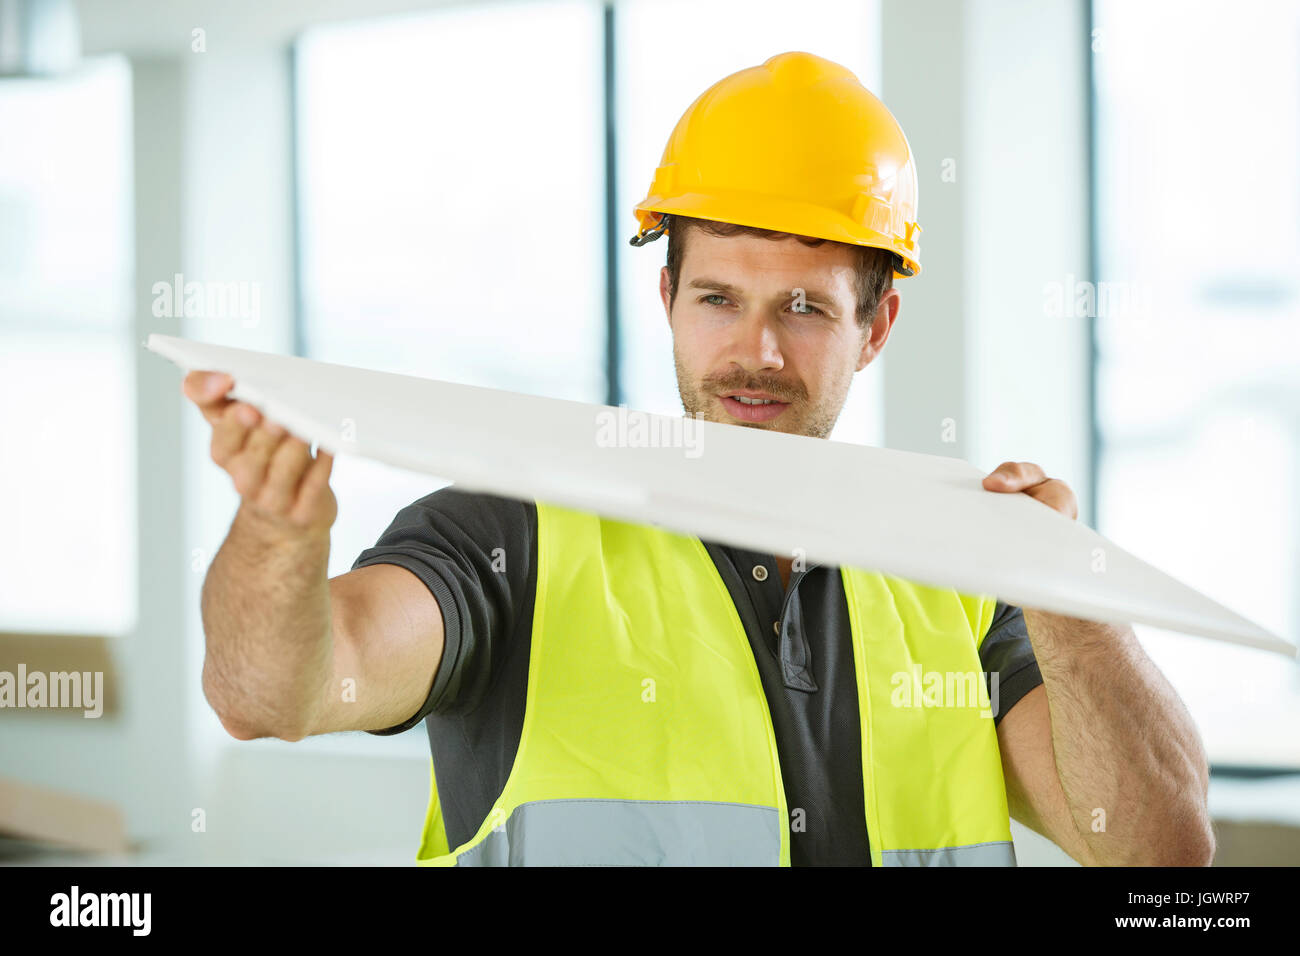 Man wearing hi vis vest, standing in newly constructed space, looking at construction material Stock Photo